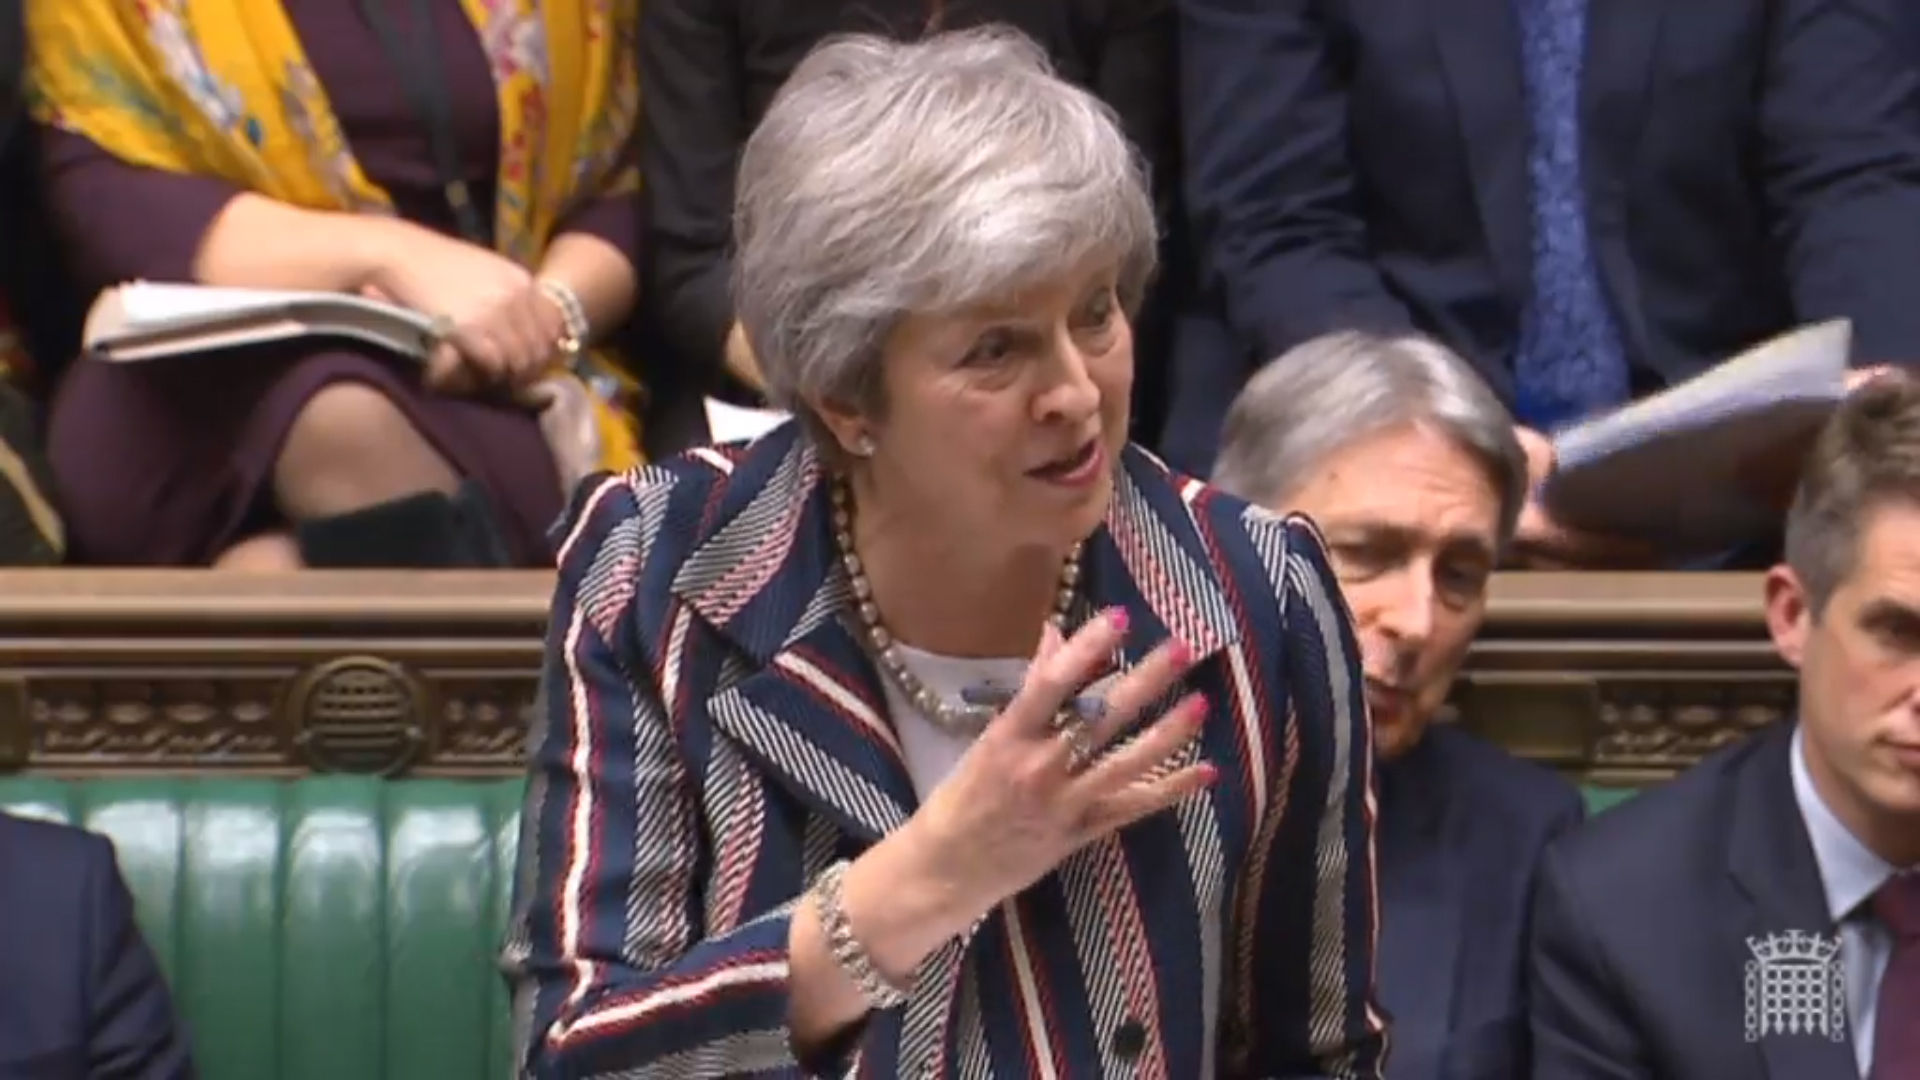 Prime Minister Theresa May addressing the House of Commons on Brexit.